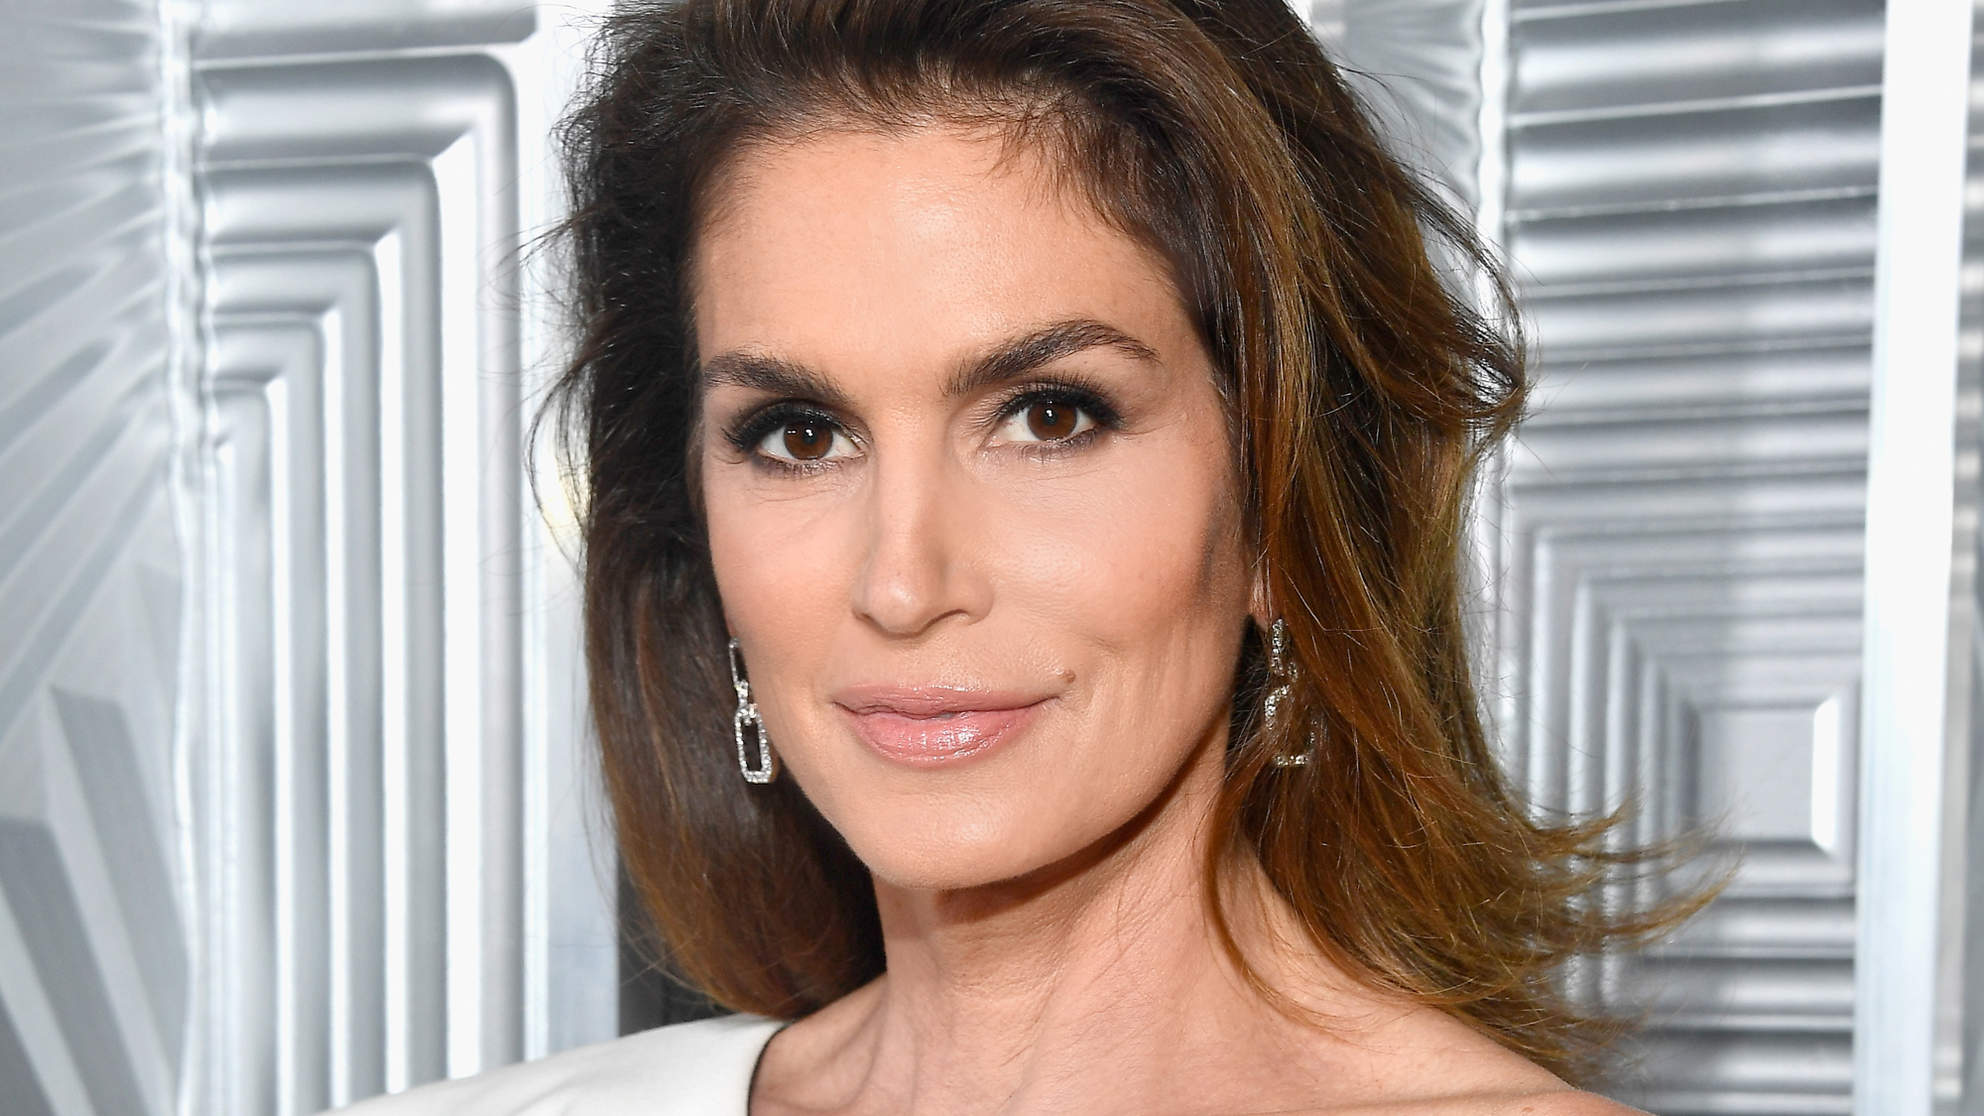 Cindy Crawford Gets Candid About Aging and the Pitfalls of Modeling